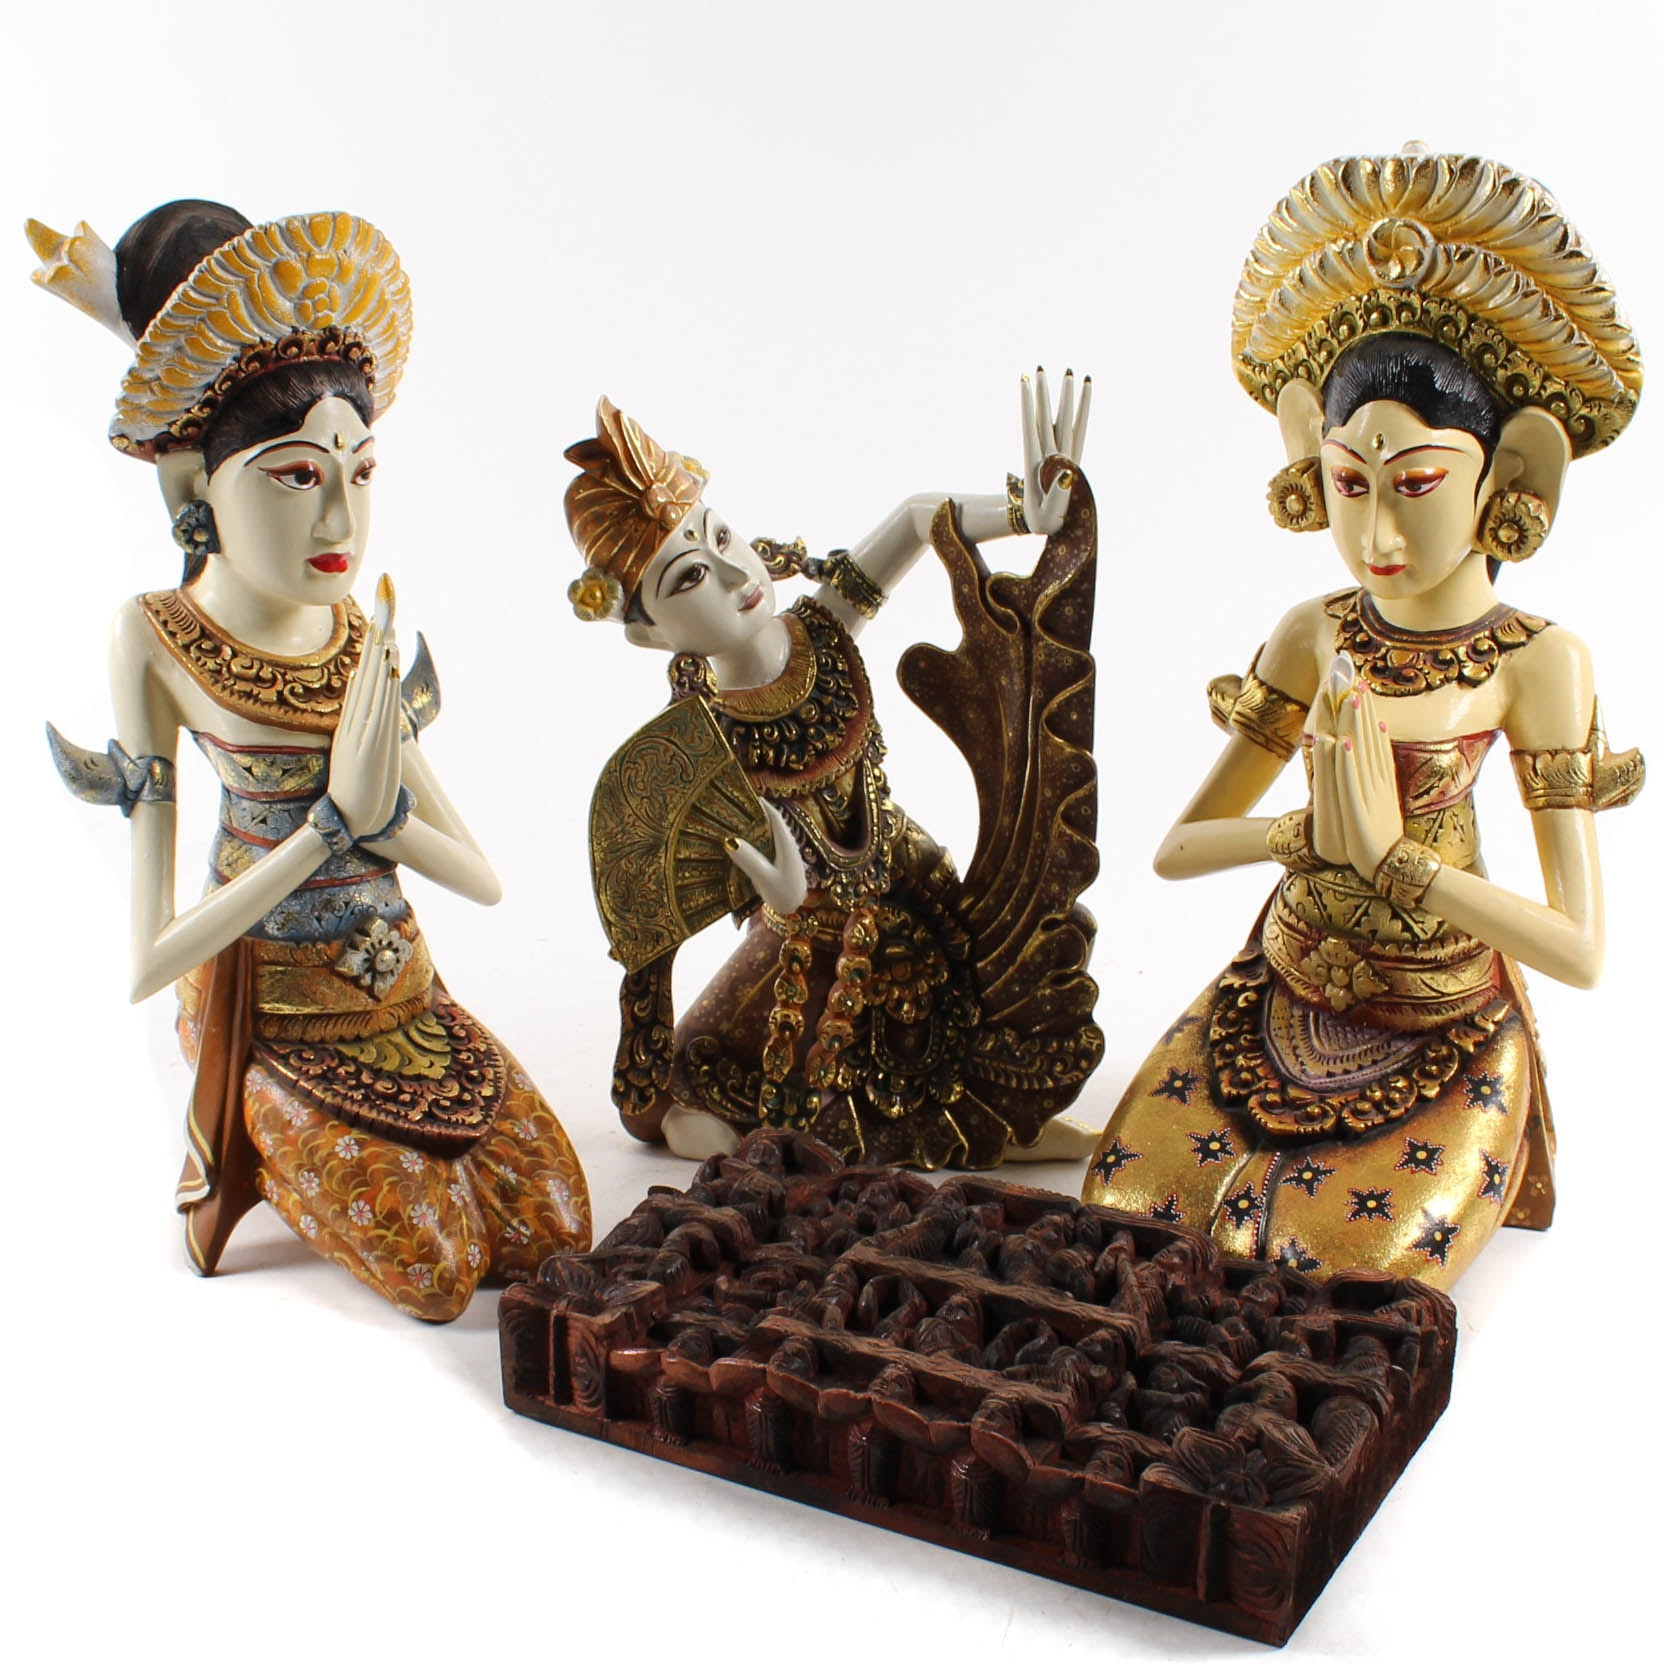 Thai Wooden Figural Carvings with Architectural Accent